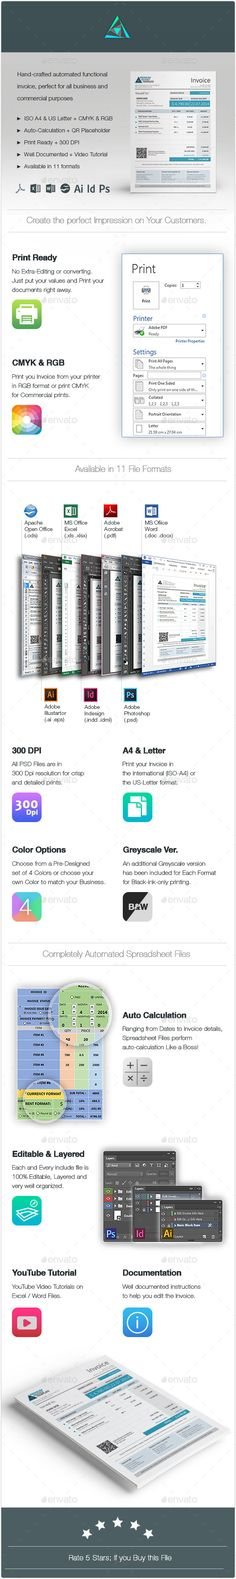 Project Proposal Landscape - Brochure Template InDesign INDD - website proposal template